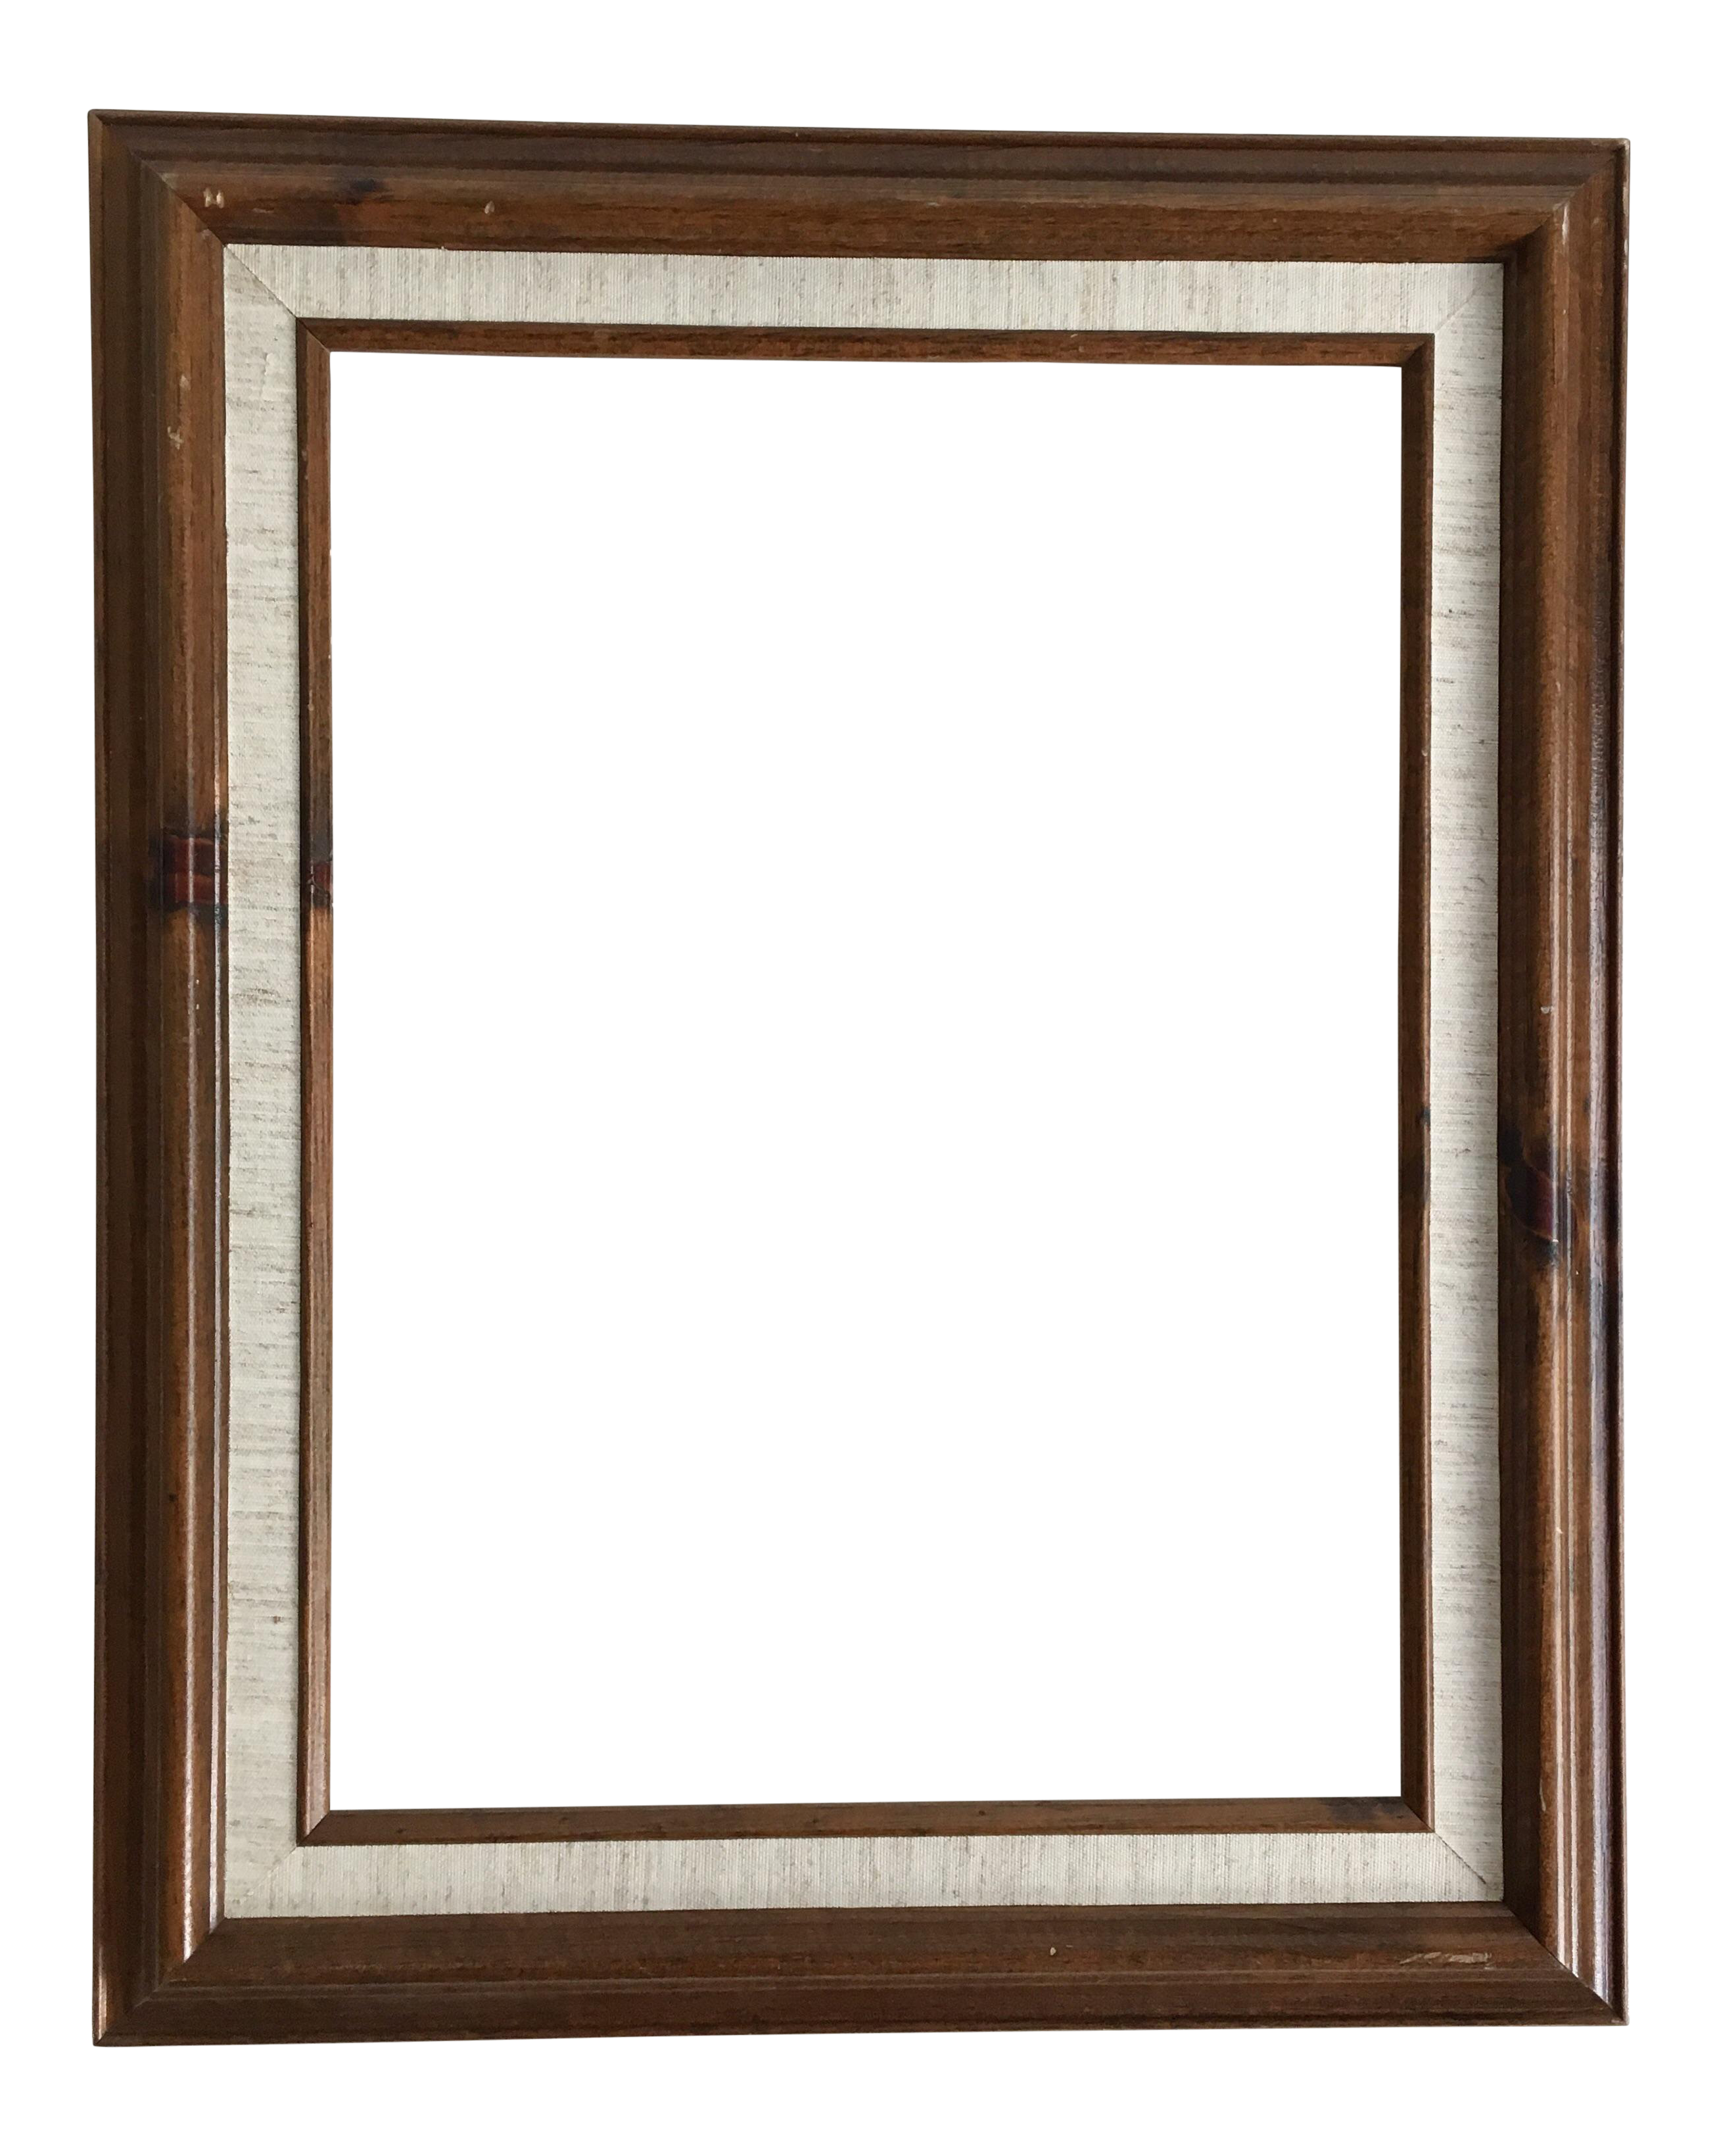 Linen chairish . Vintage wood frame png